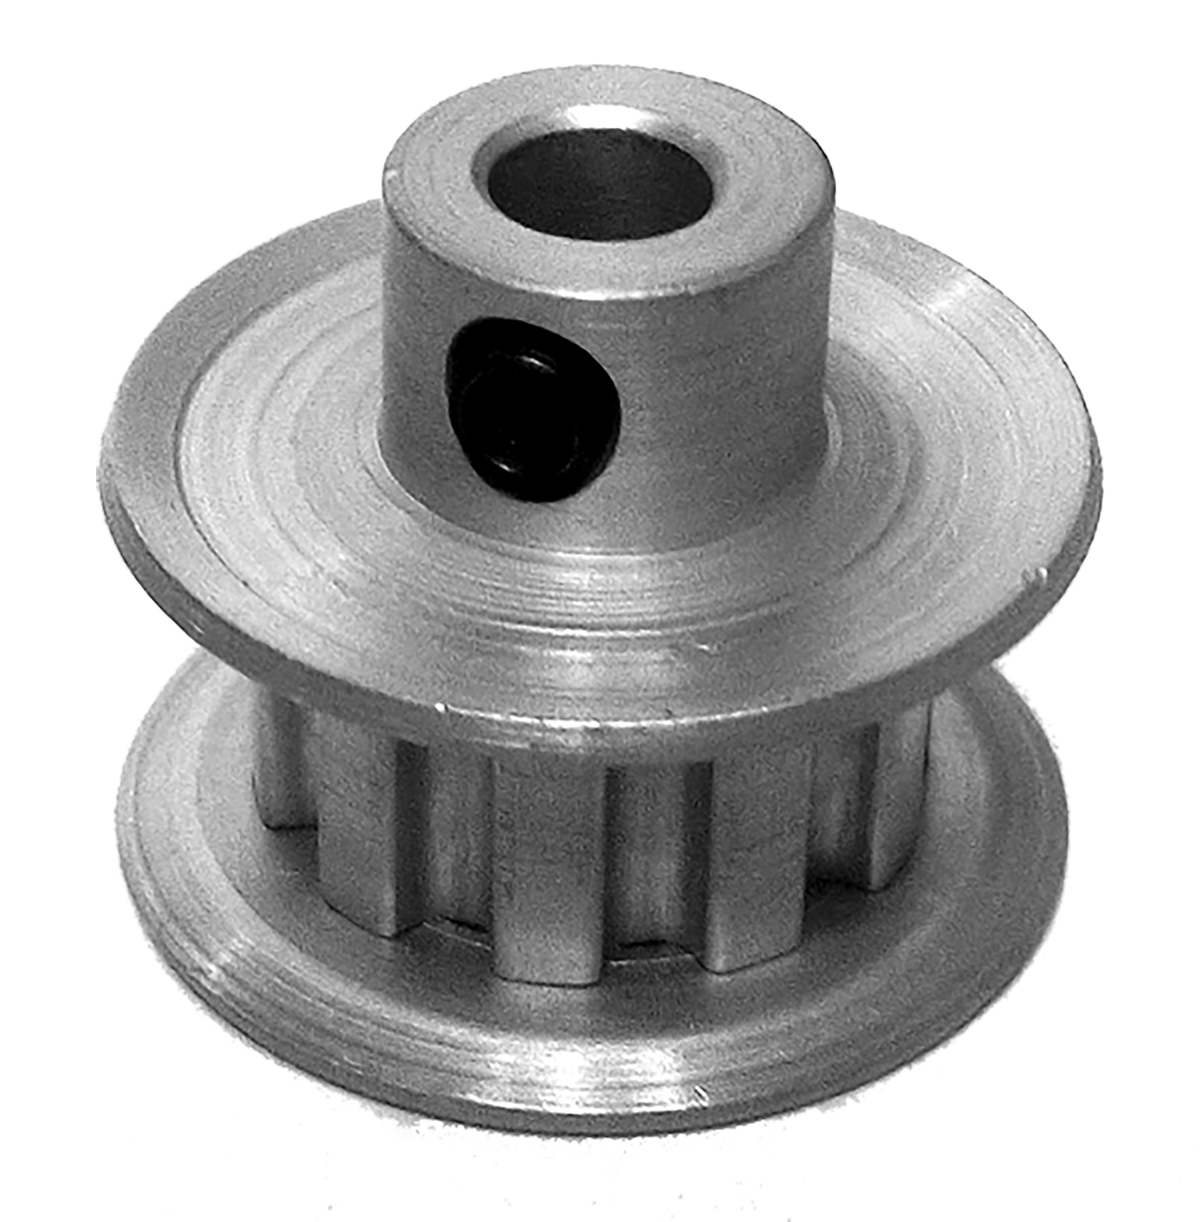 16XL025-6FA6 - Aluminum Imperial Pitch Pulleys